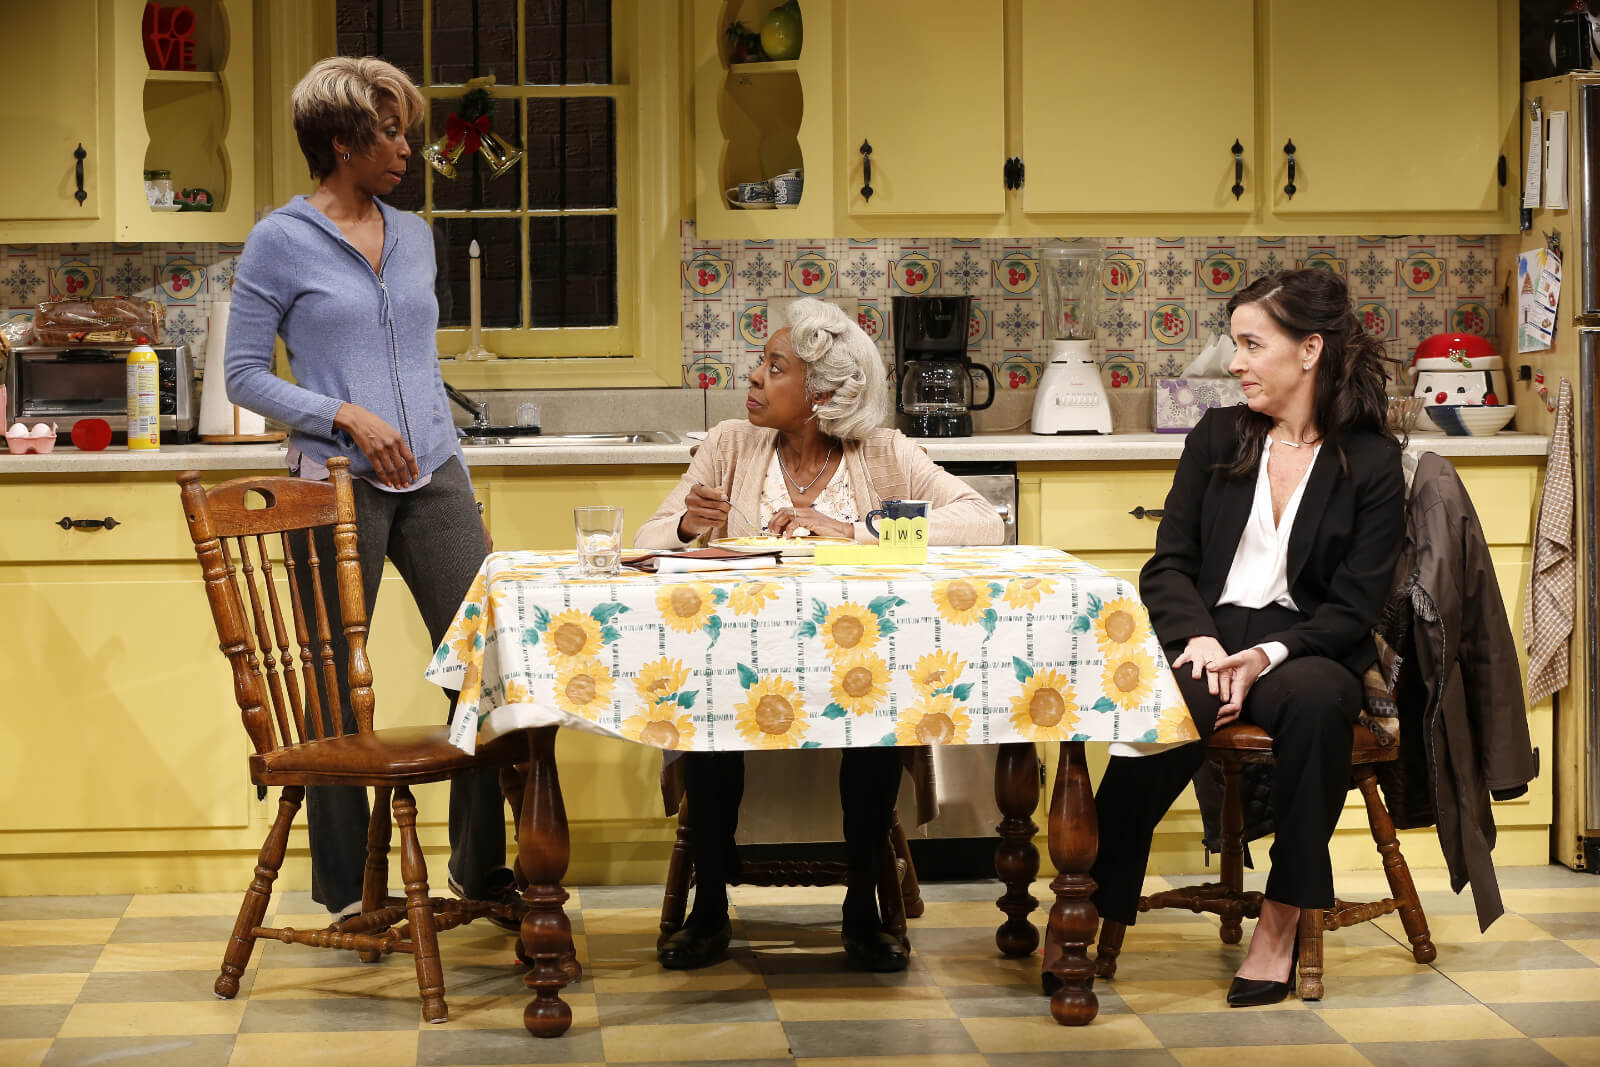 Shelly (Sharon Washington) stands in the kitchen while talking to Dotty (Marjorie Johnson) and Jackie (Finnerty Steeves) at the table